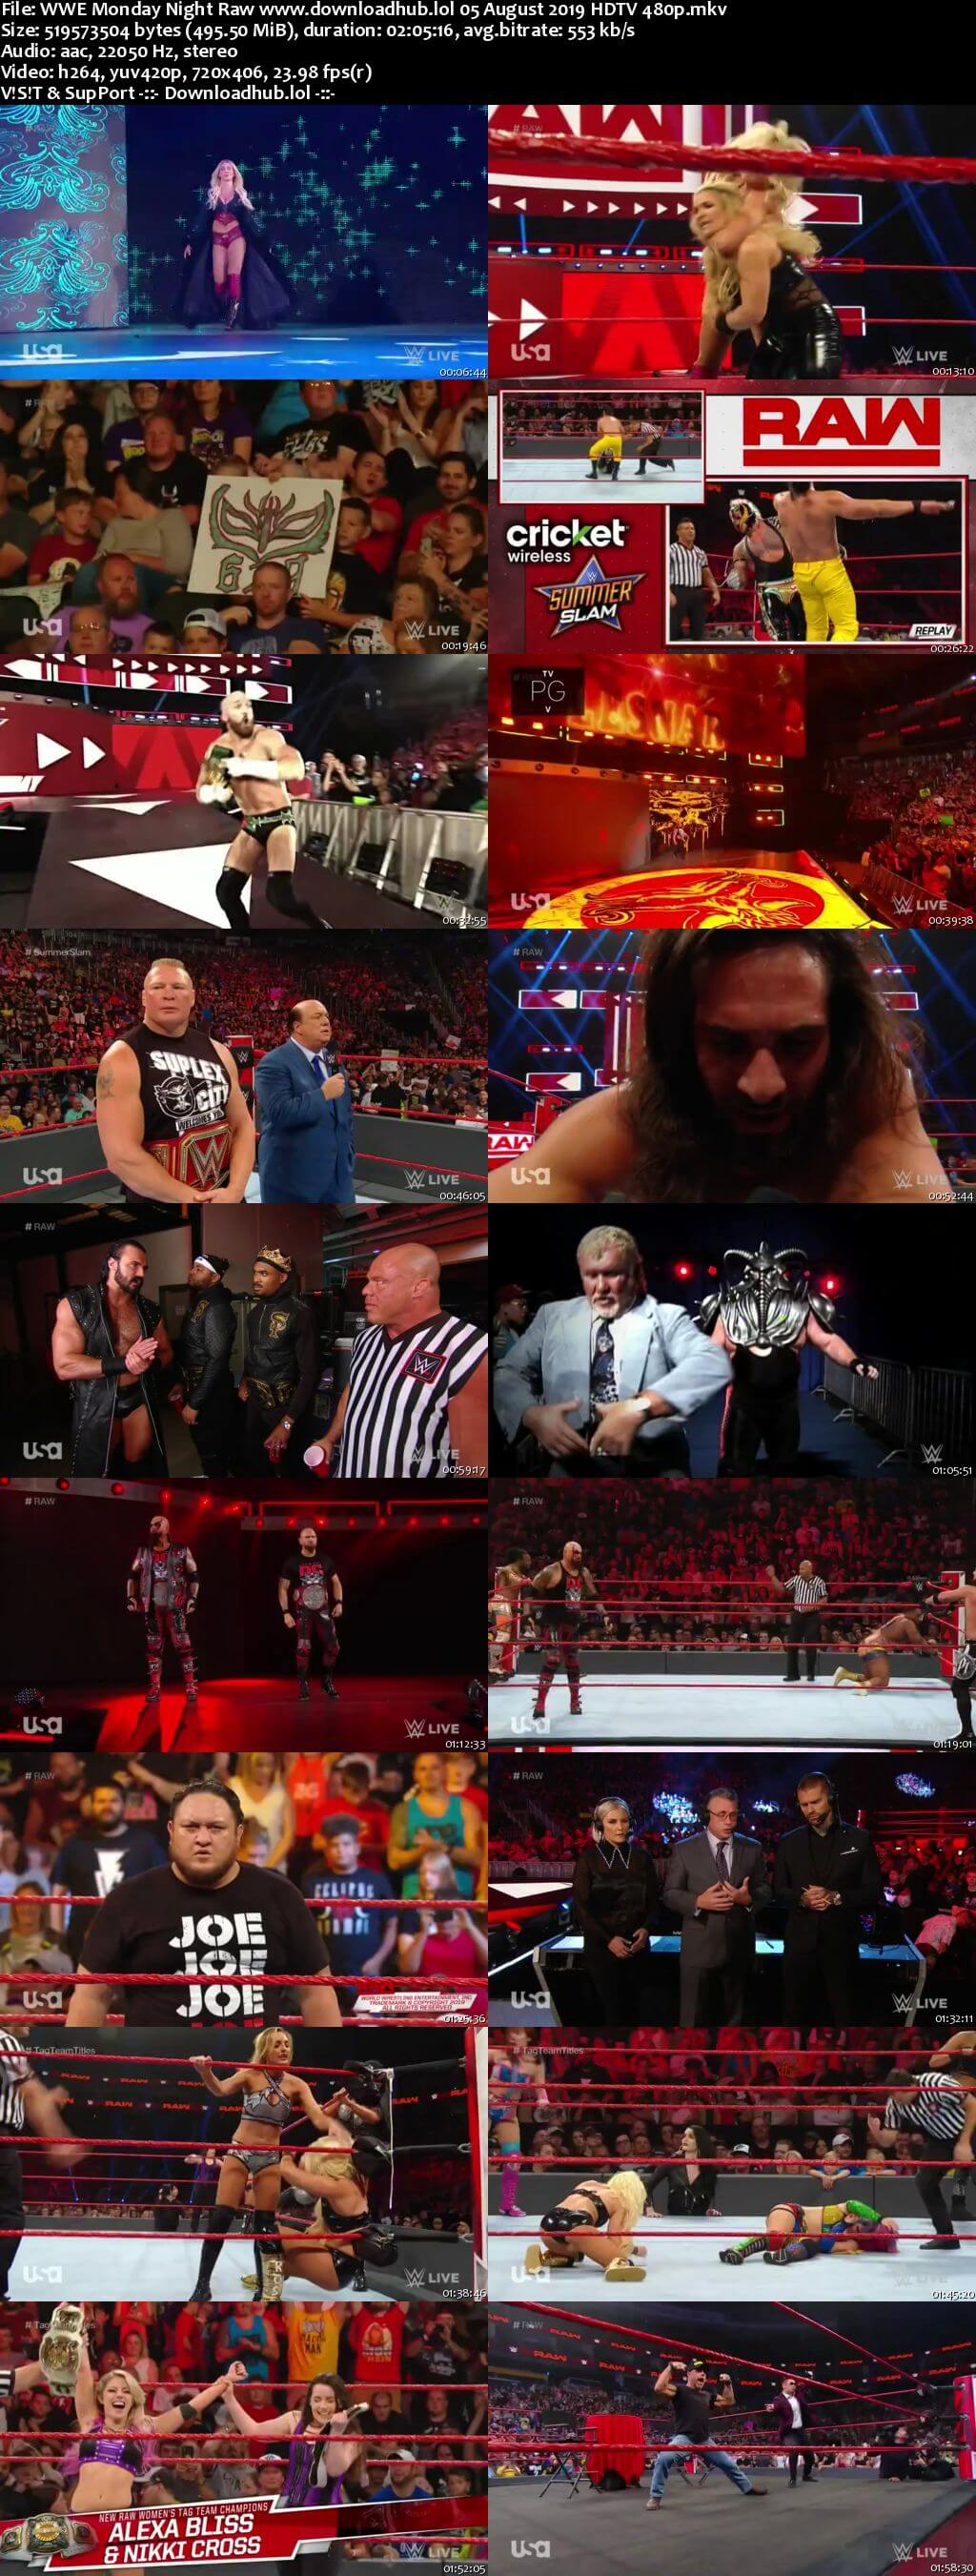 WWE Monday Night Raw 5th August 2019 500MB HDTVRip 480p